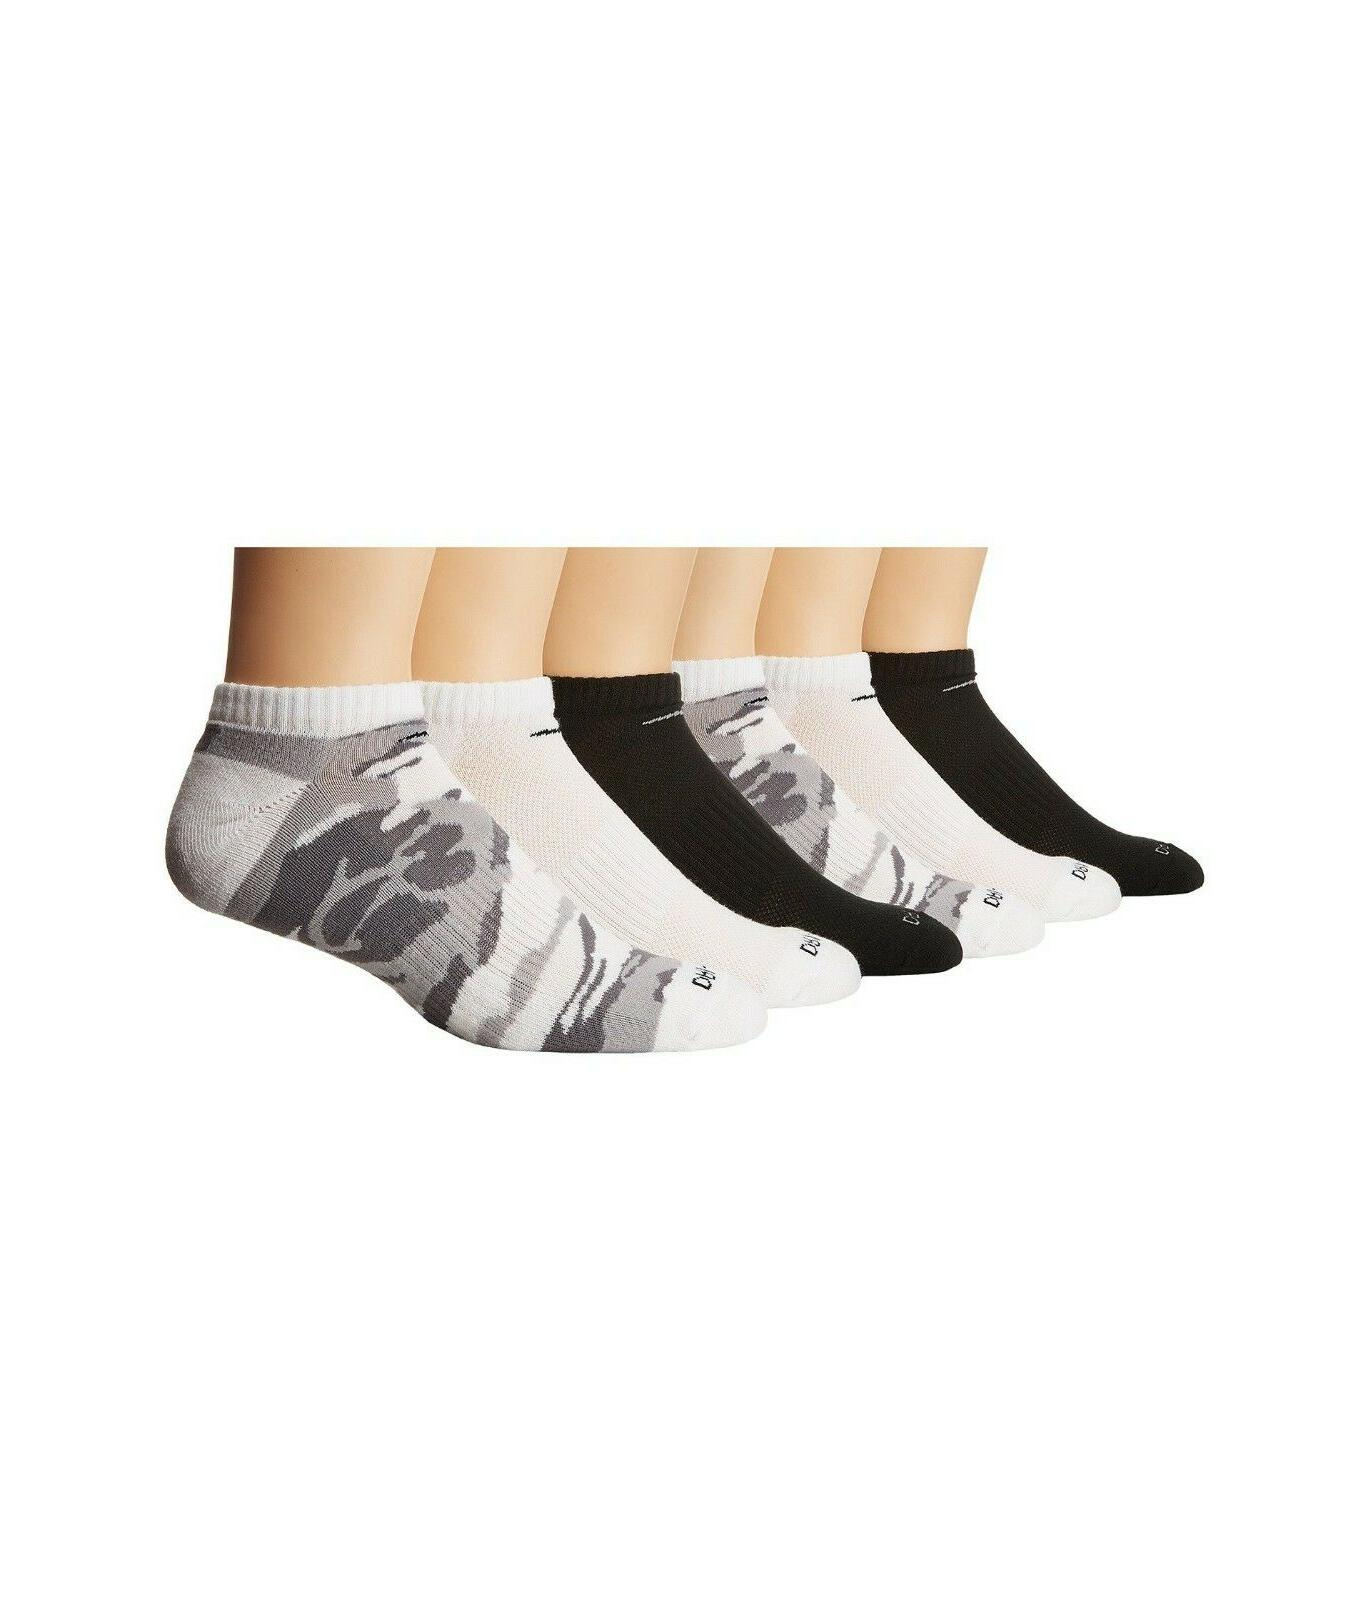 Black / White 3-pk. Dri-FIT |